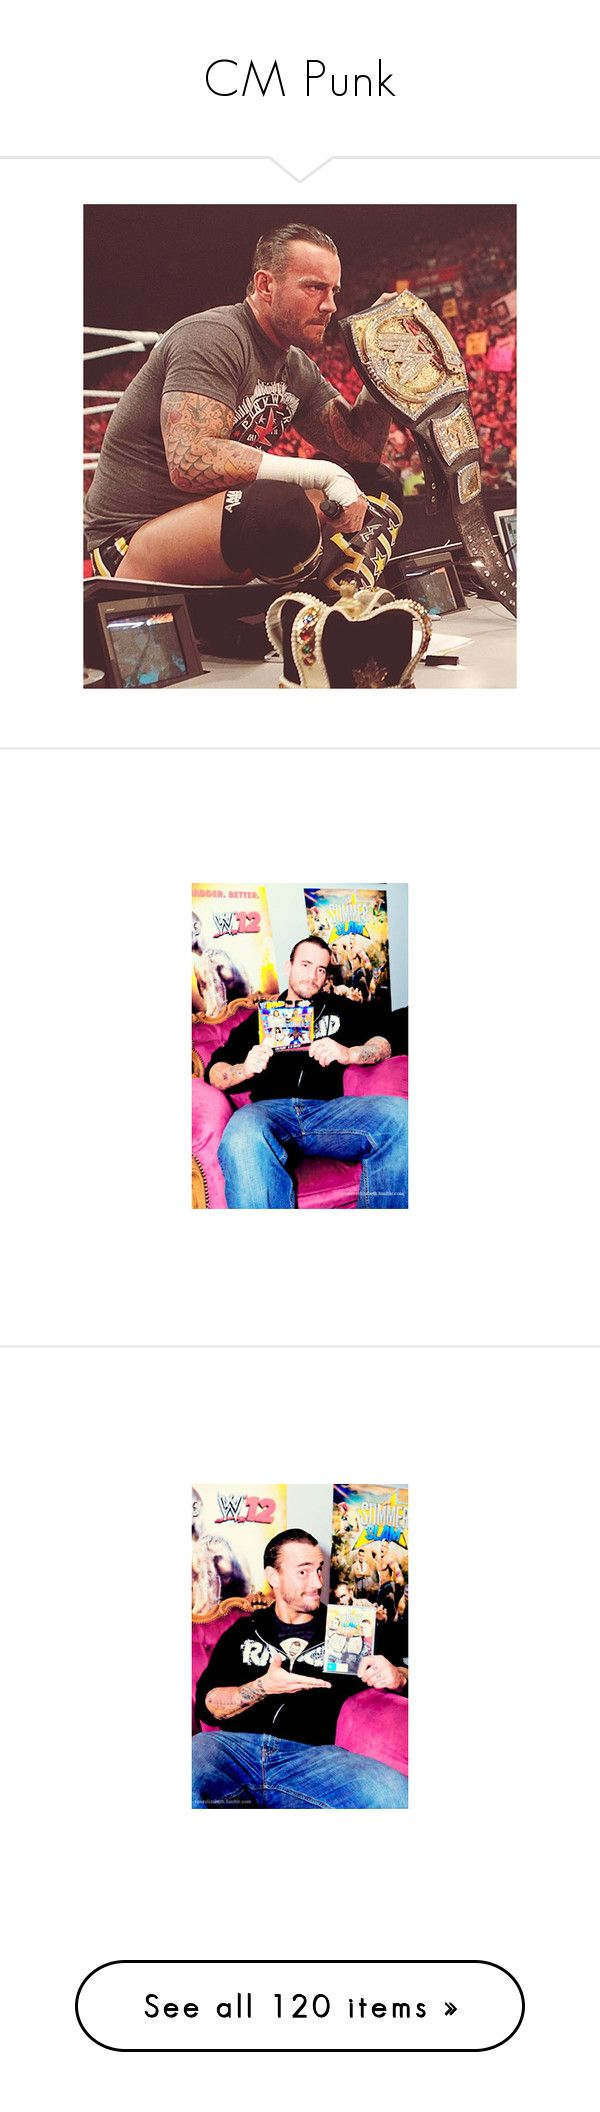 """""""CM Punk"""" by shadowstoneheart ❤ liked on Polyvore featuring cm punk, wwe, pictures, people, wwe/tna, wrestling, guys, men, phrase and quotes"""